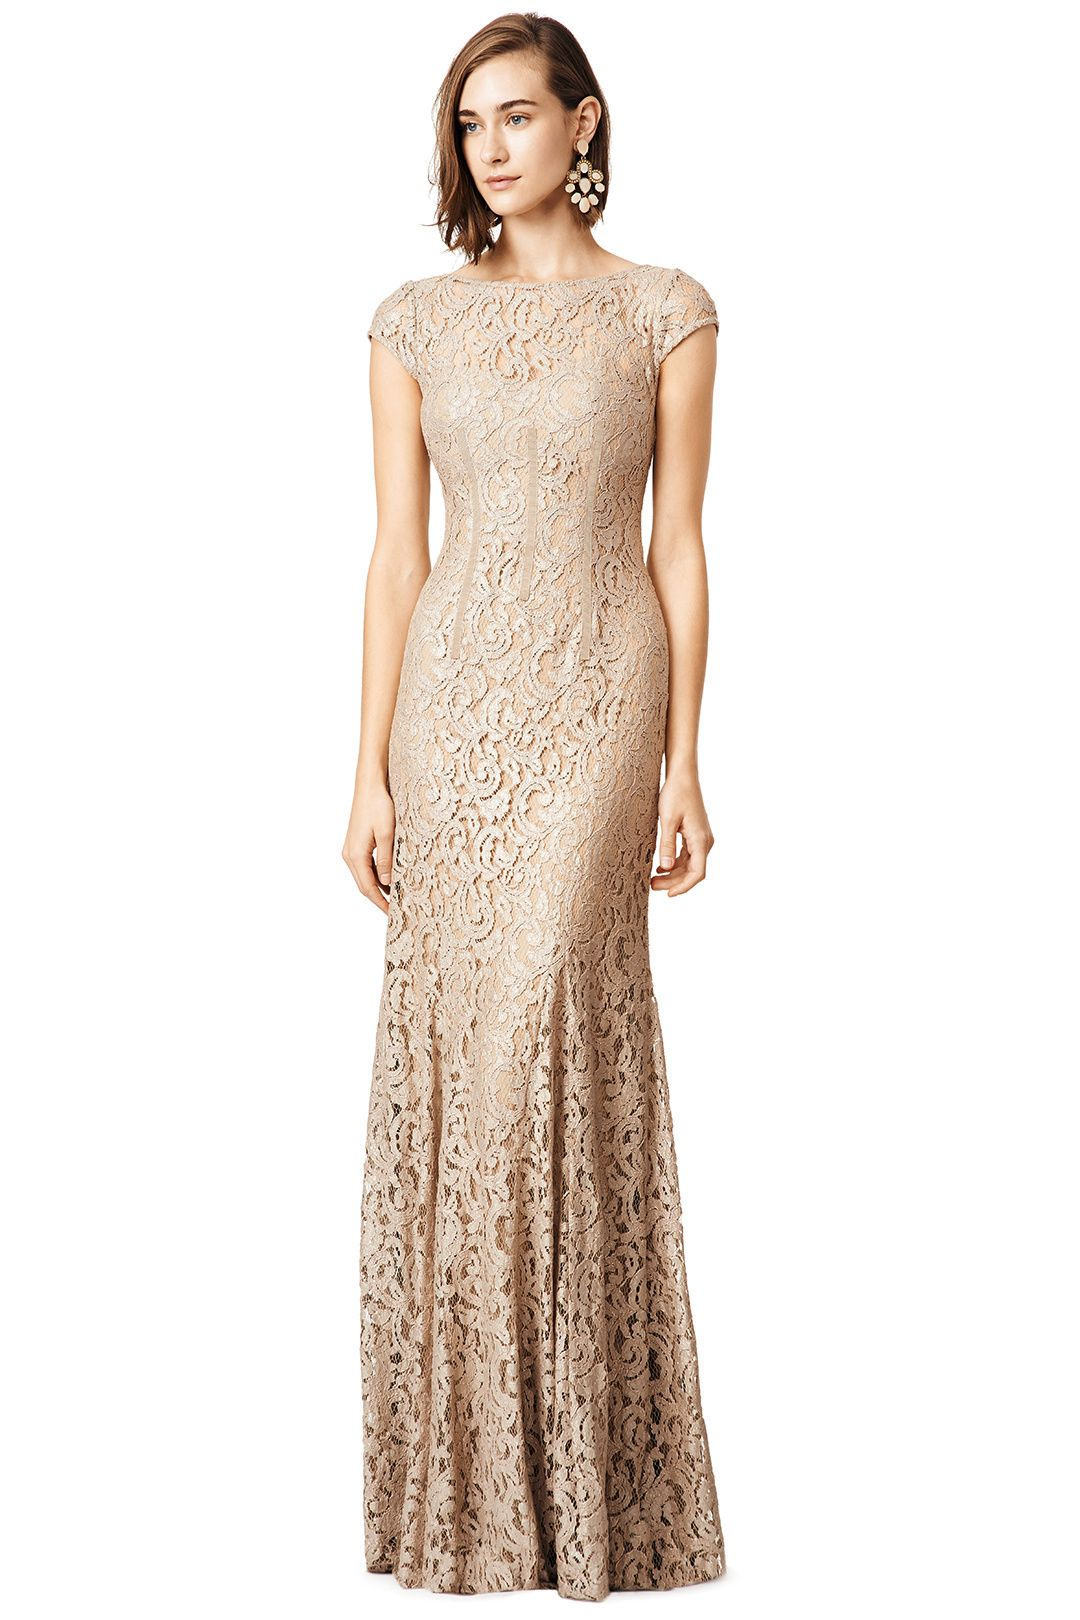 Floor Length Metallic Gown With Lace Overlay Glitter In Gold By Monique Lhuillier